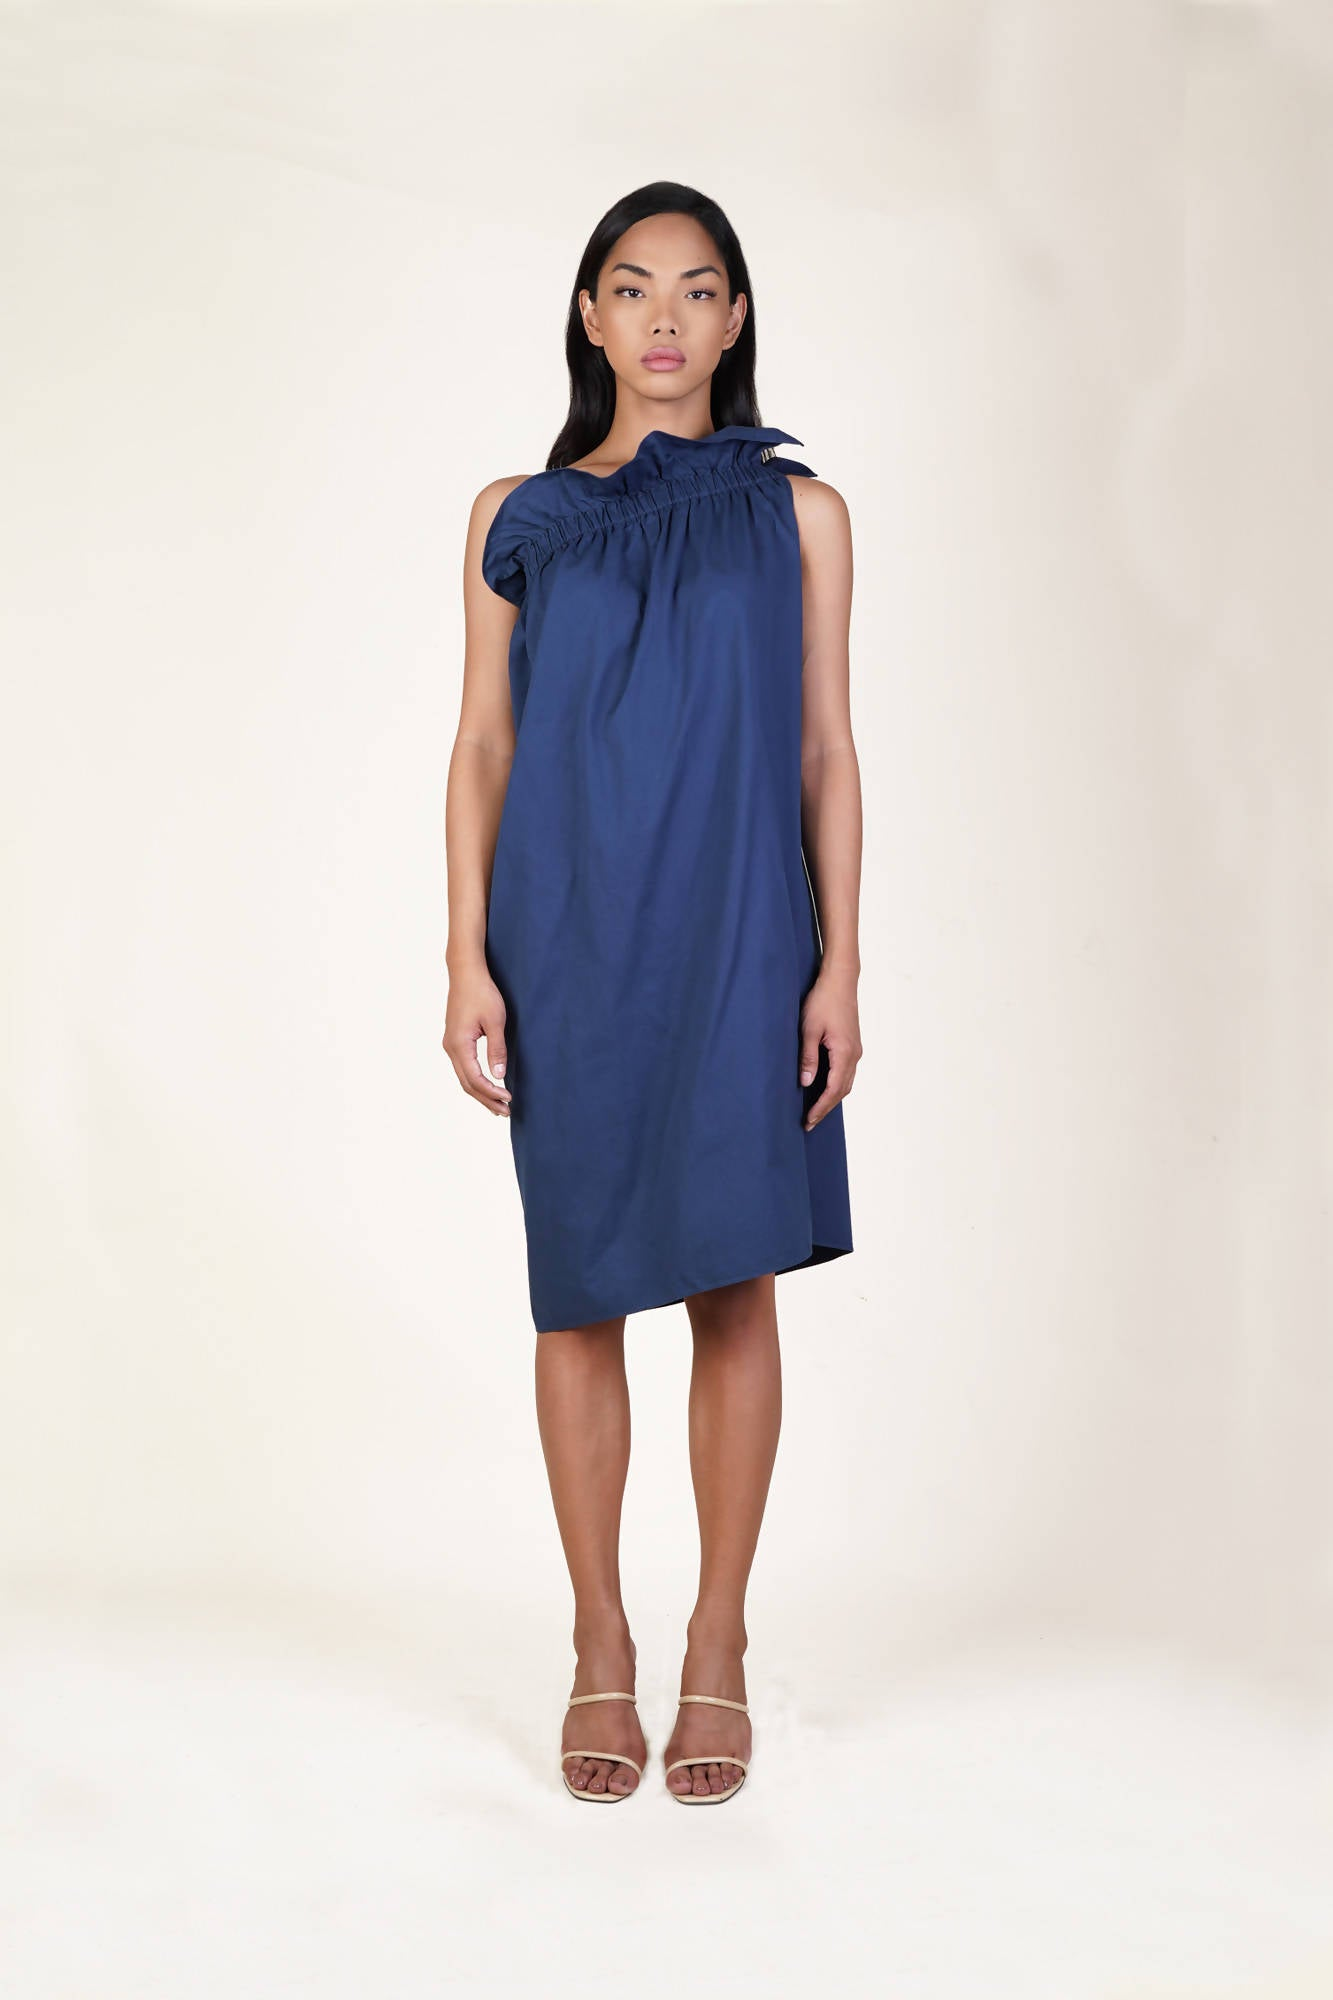 Gardena Dress in Navy